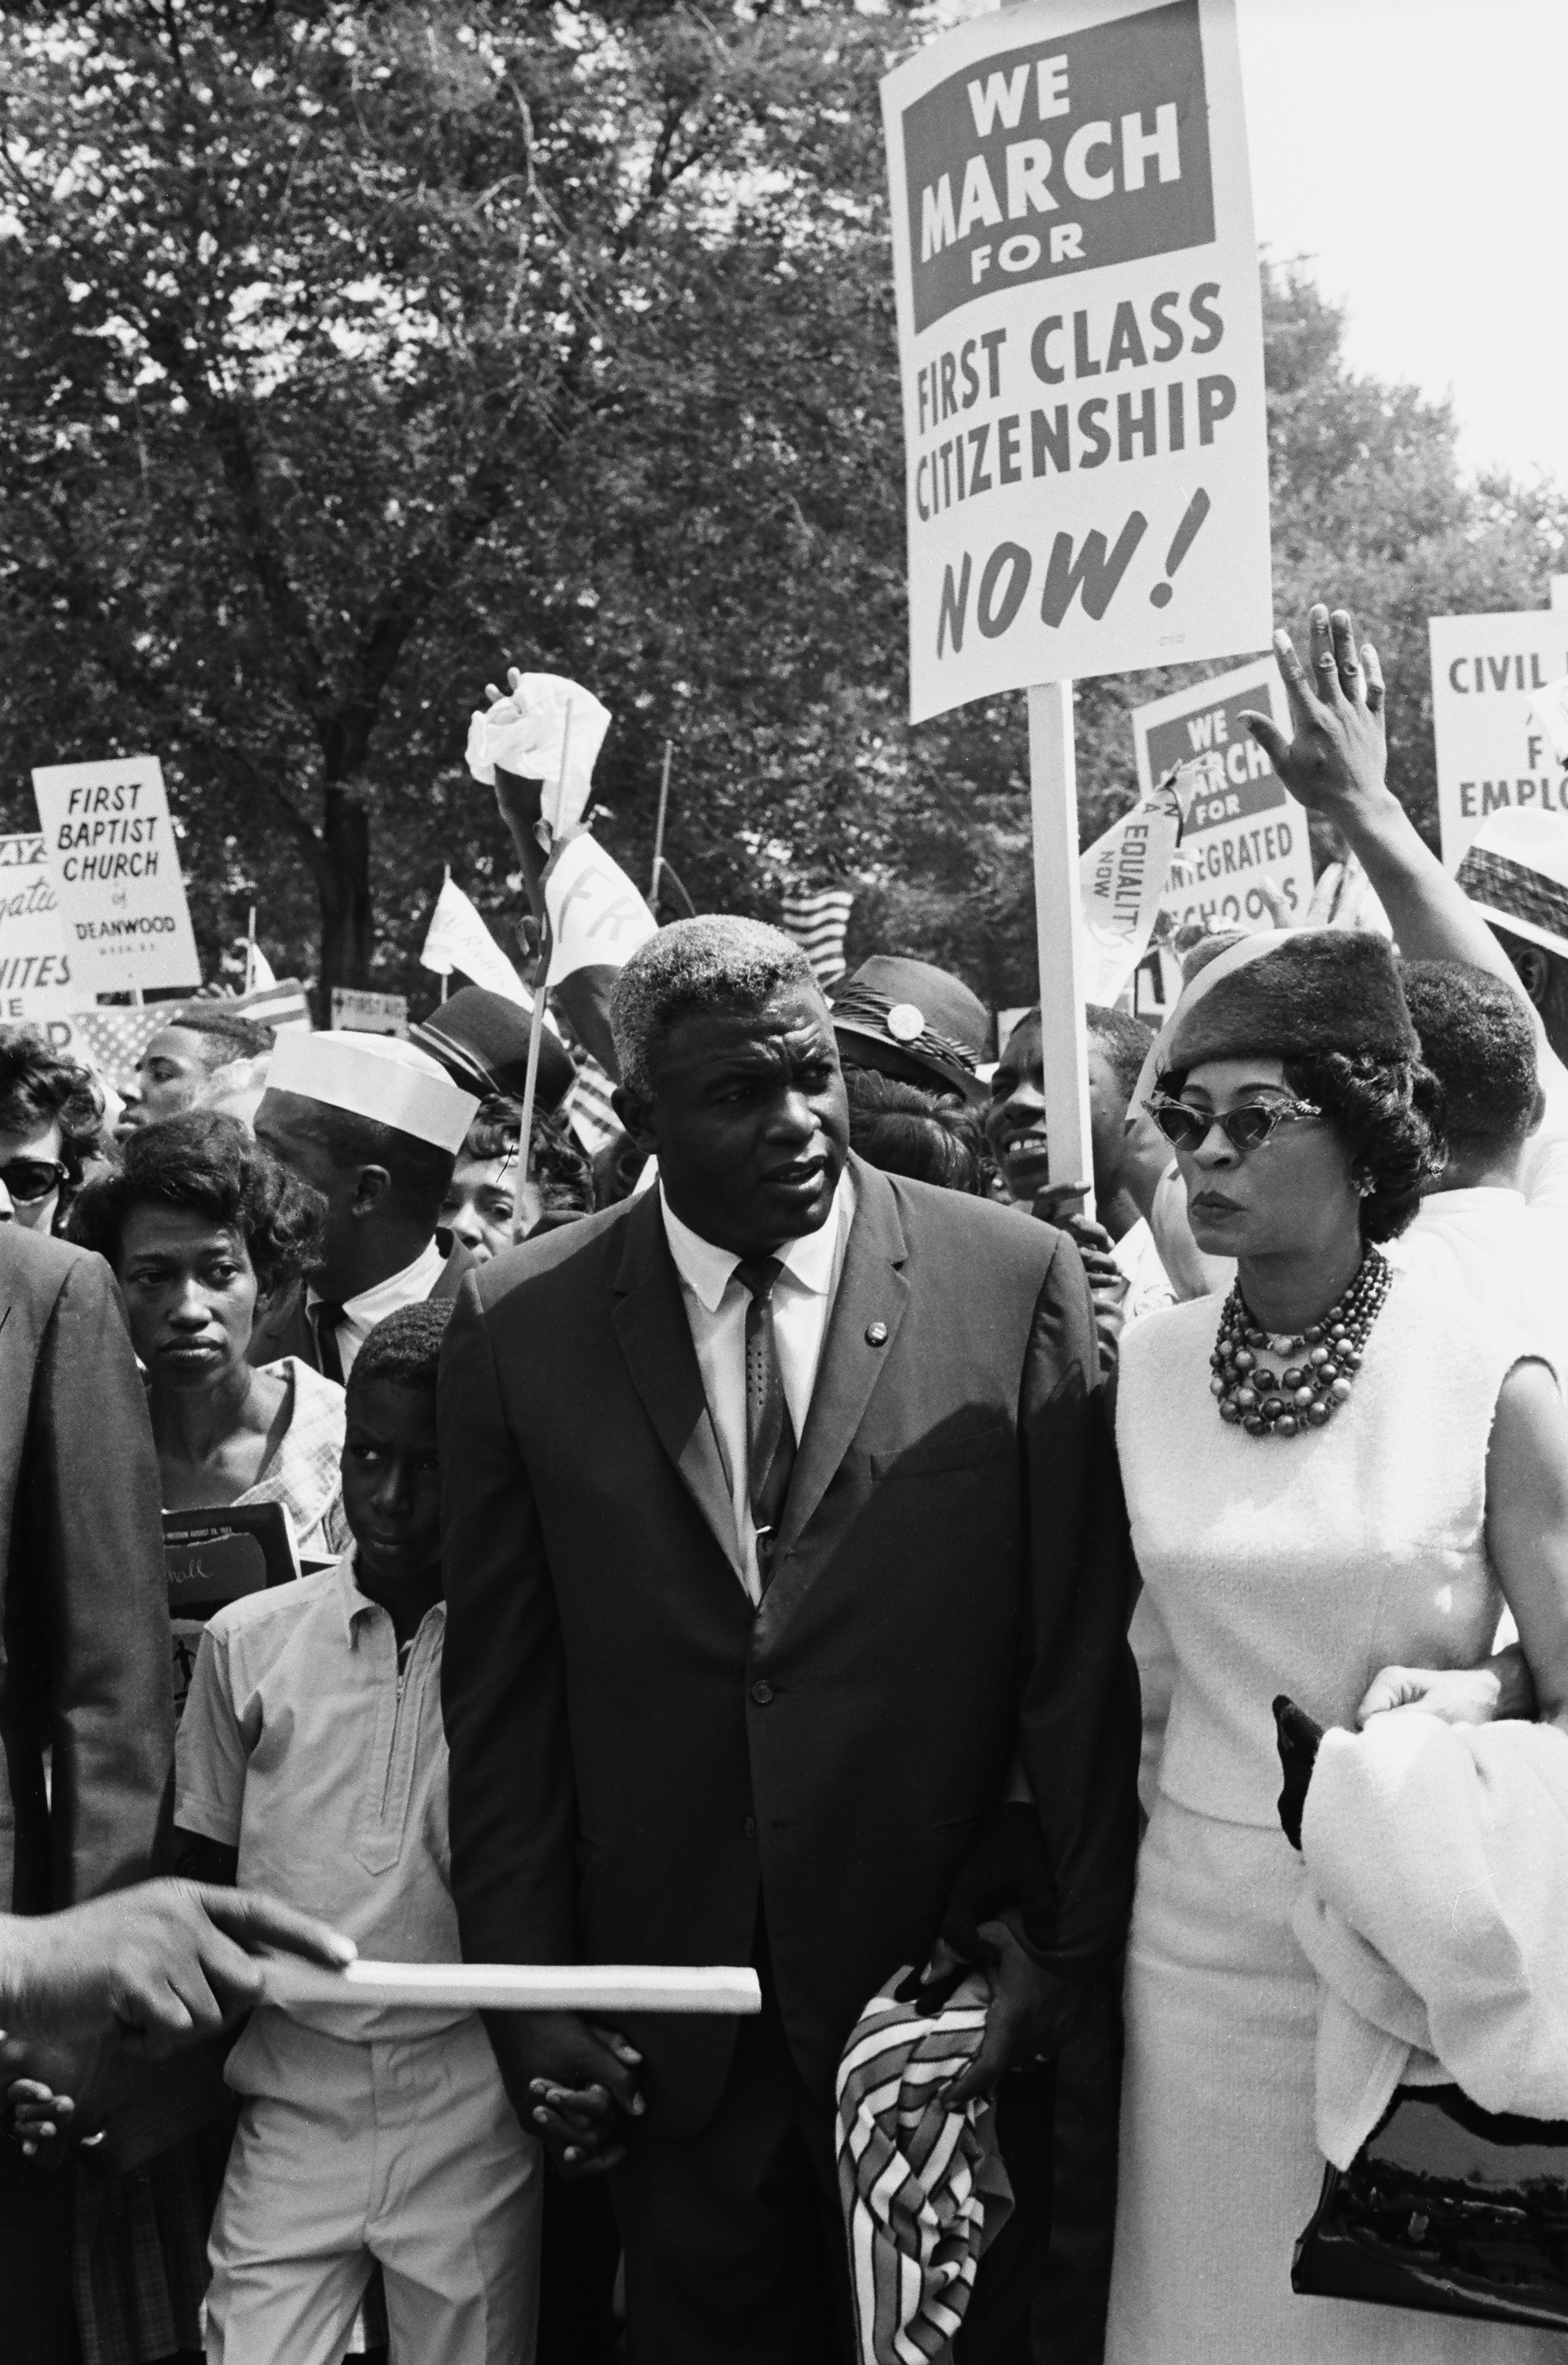 Son David Robinson, baseball player Jackie Robinson, wife Rachel Robinson during the March on Washington for Jobs and Freedom political rally in Washington, DC on August 28, 1963